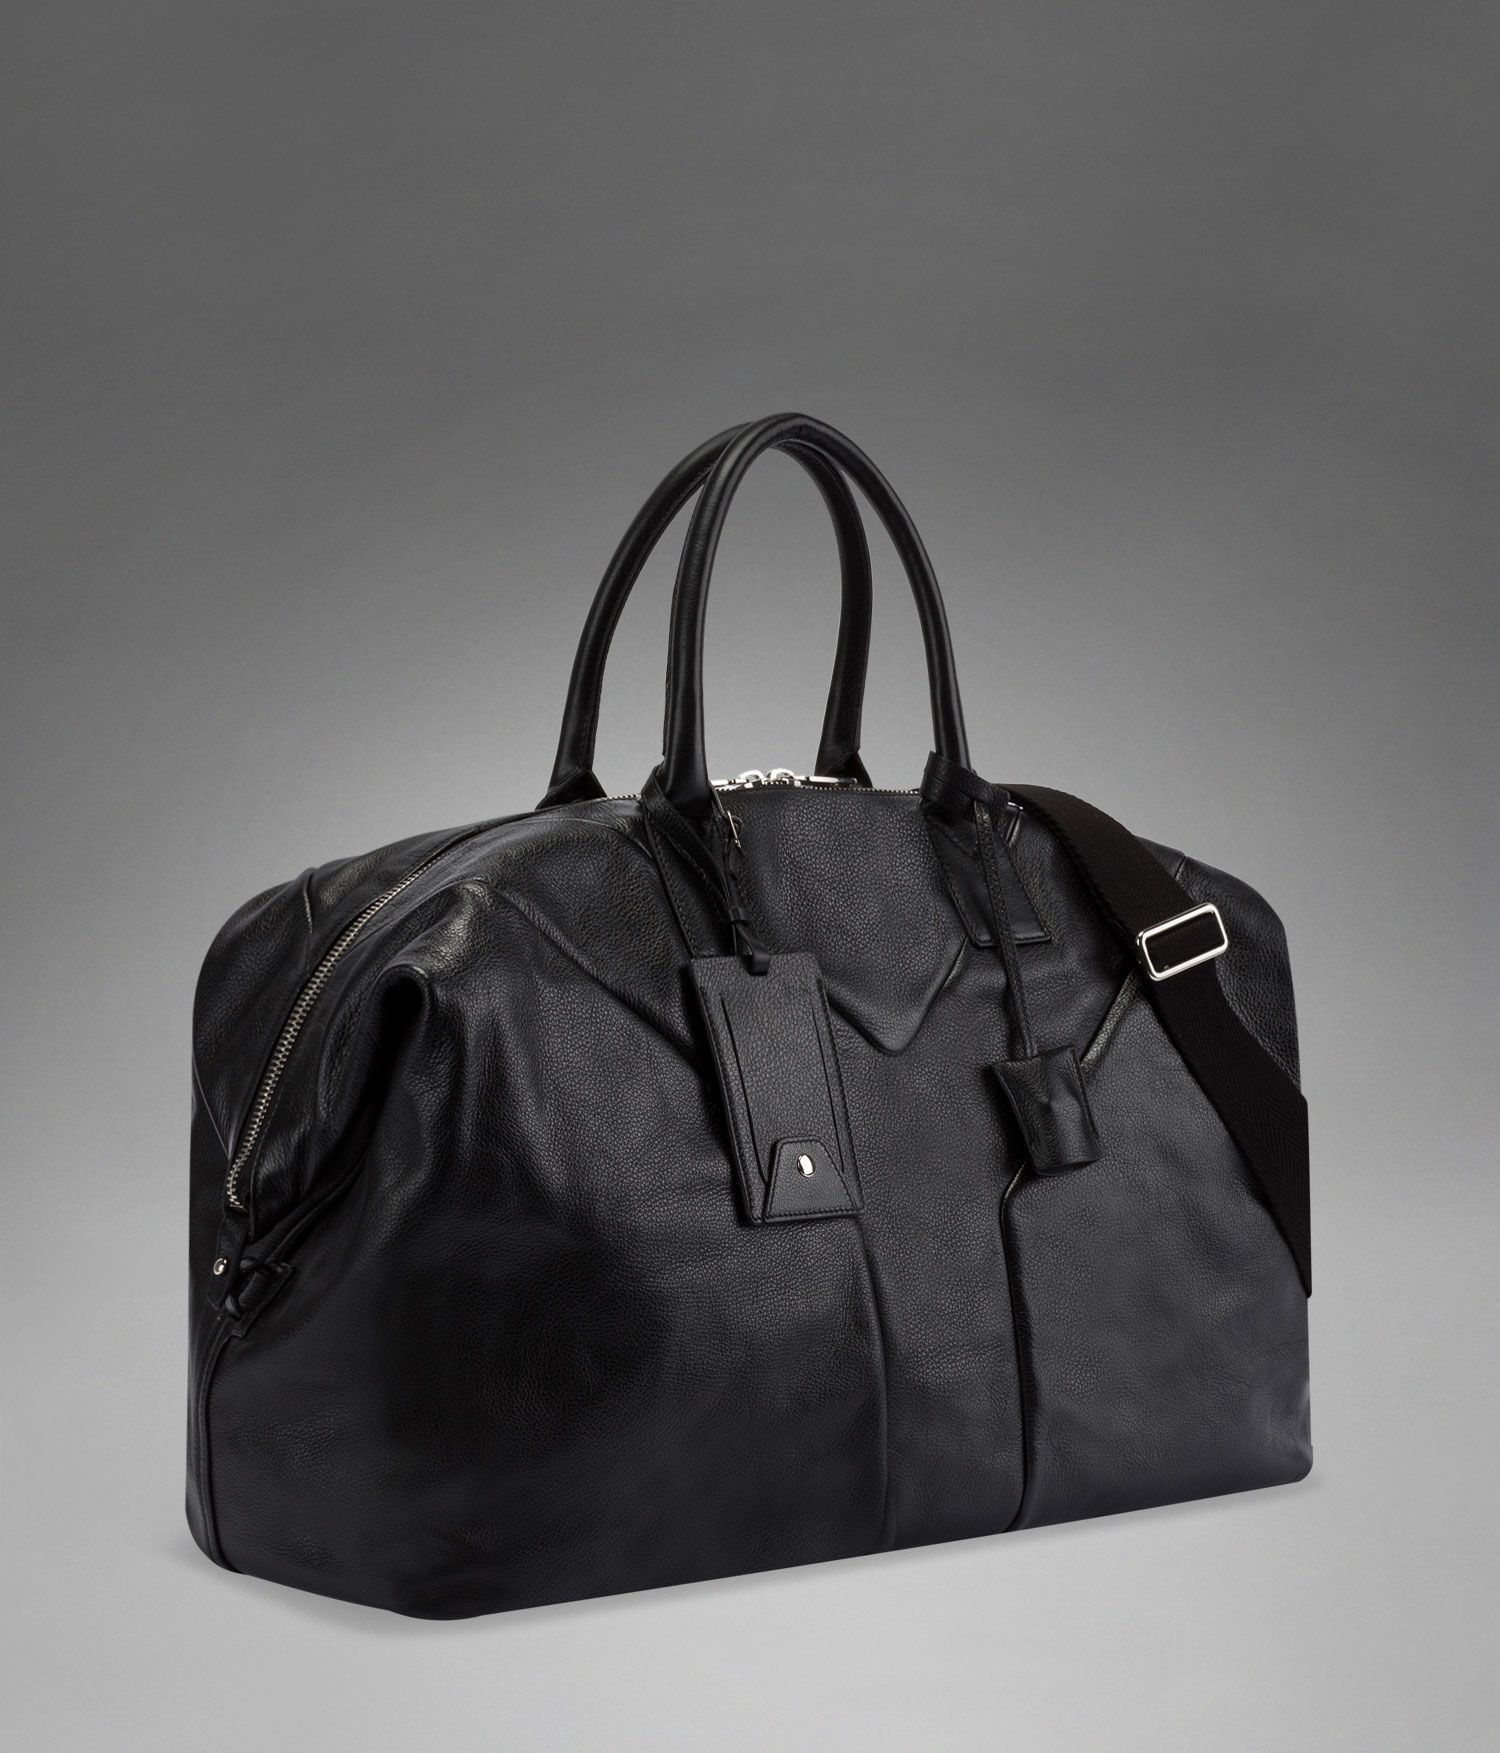 39f145a3a1 YSL Hamptons Travel Bag in Black Leather - Travel – Bags – Men – Yves Saint  Laurent – www.ysl.com